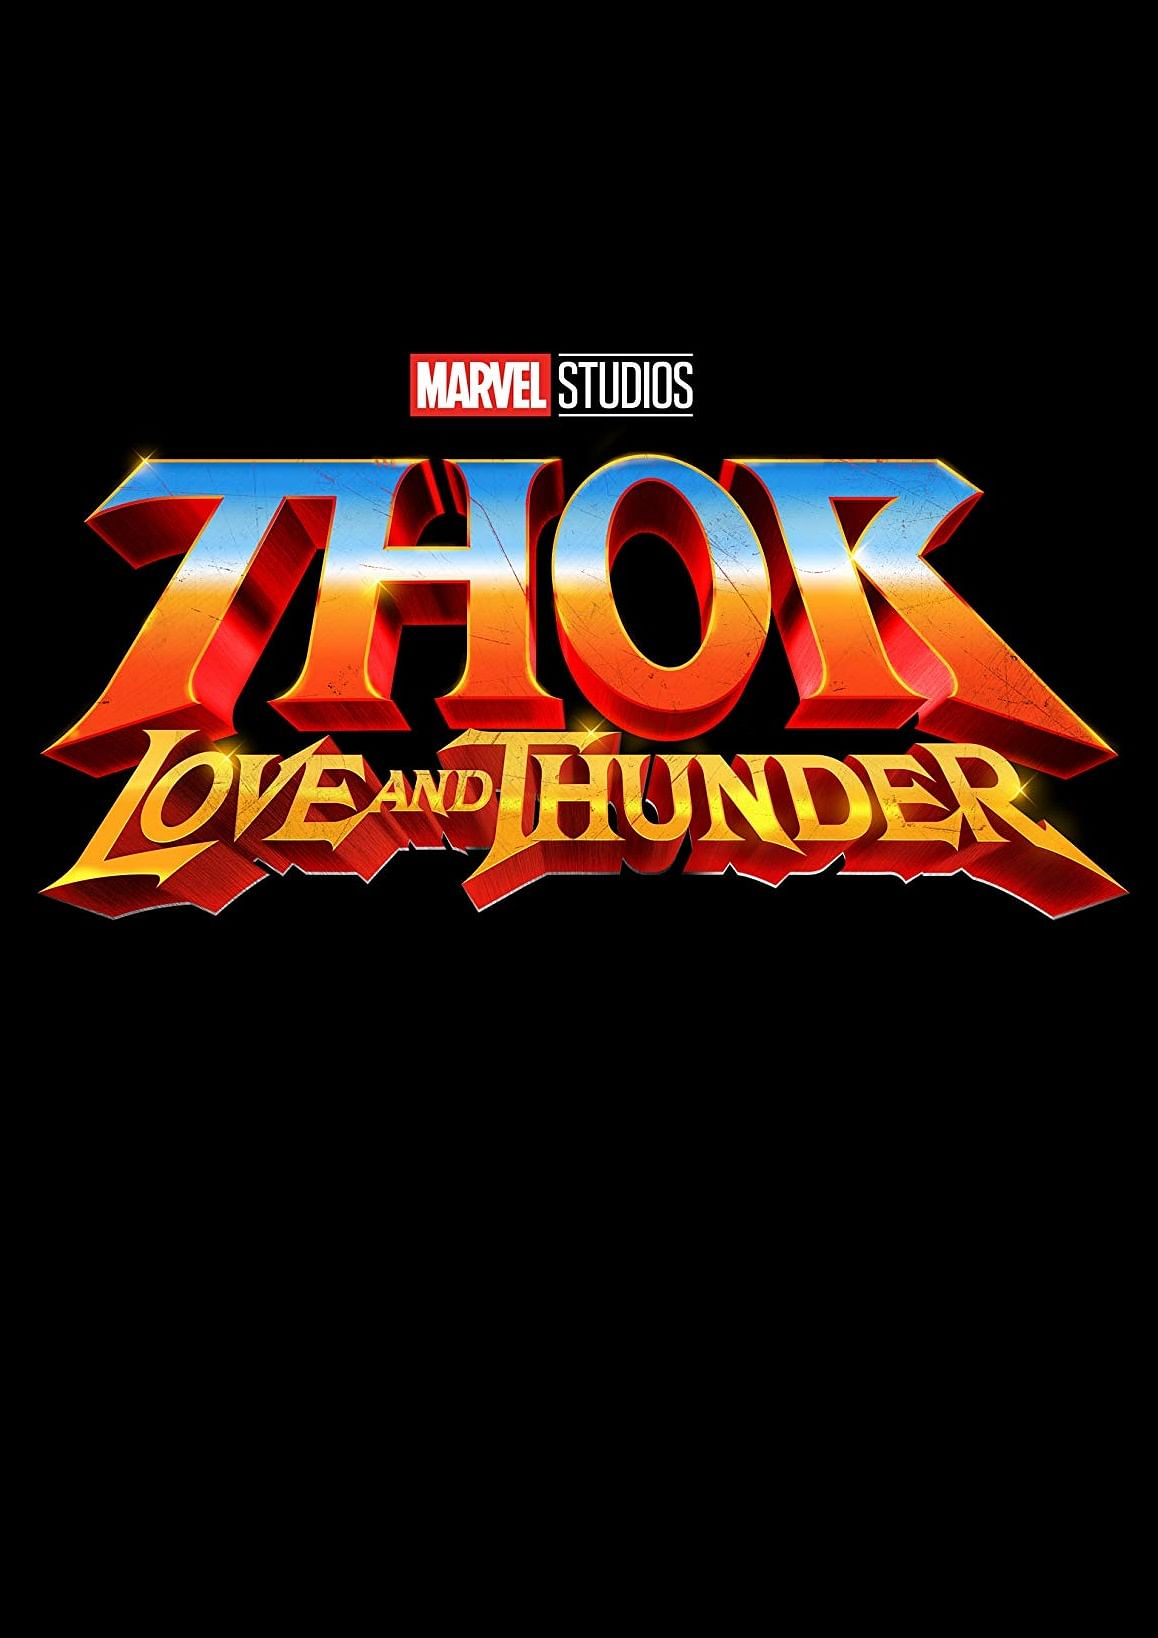 The movie poster of <i>Thor: Love and Thunder.</i>